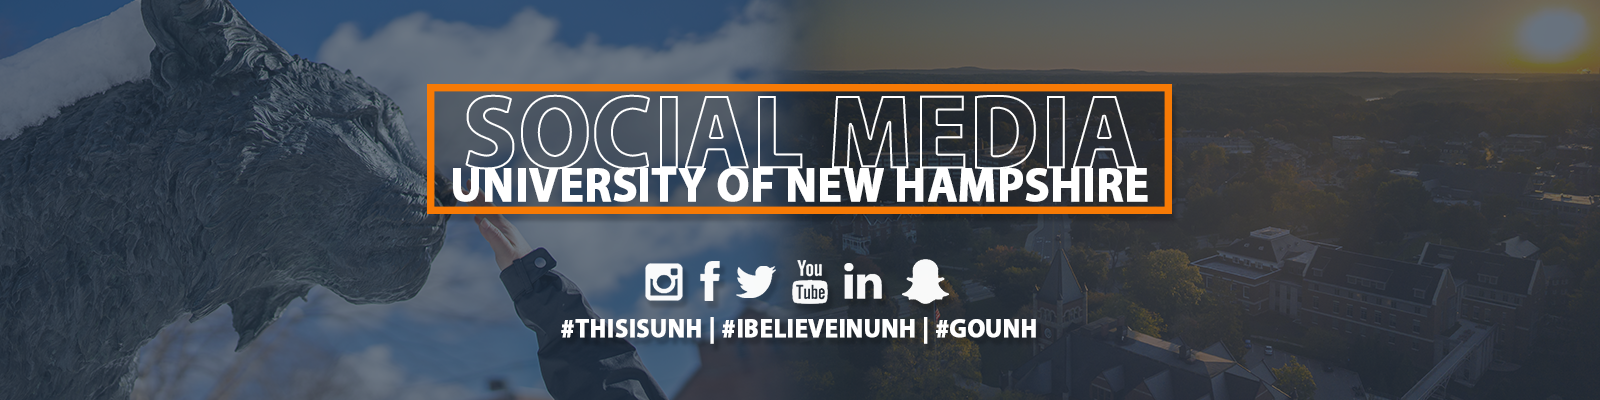 unh social media header graphic